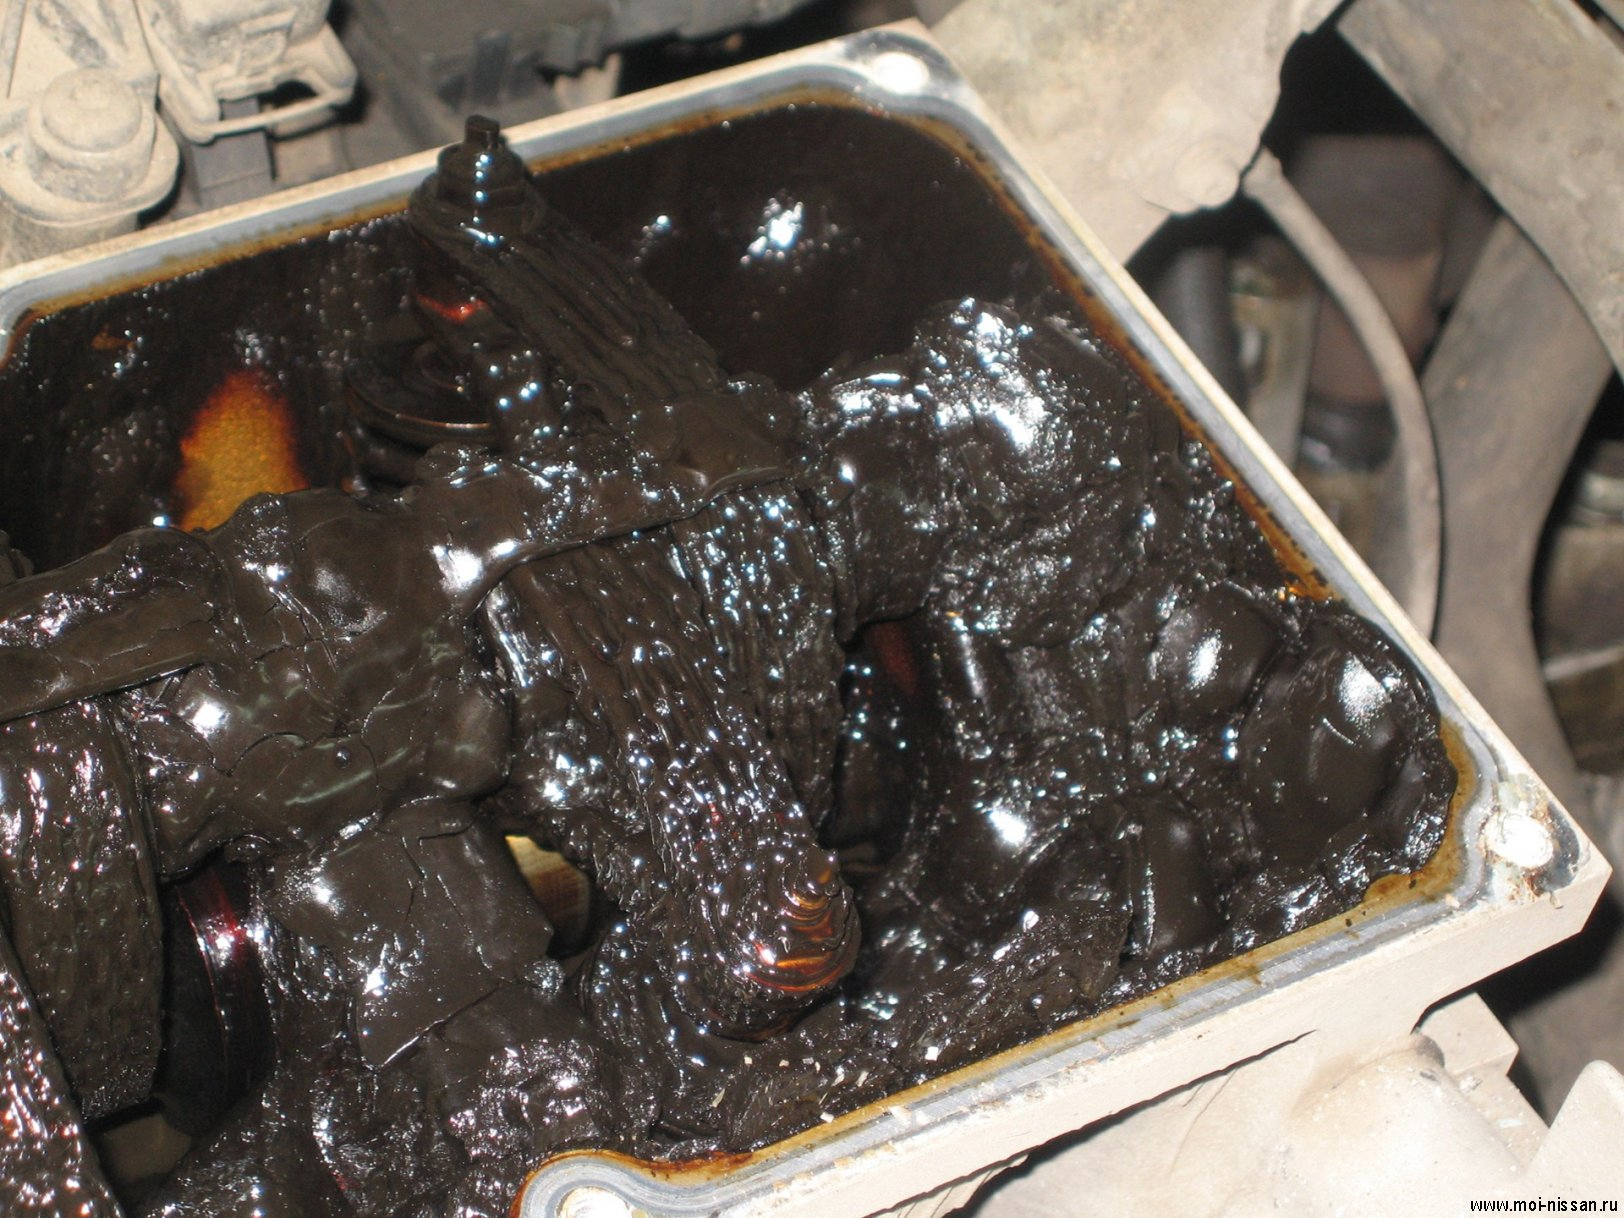 how to clean car engine after oil leak